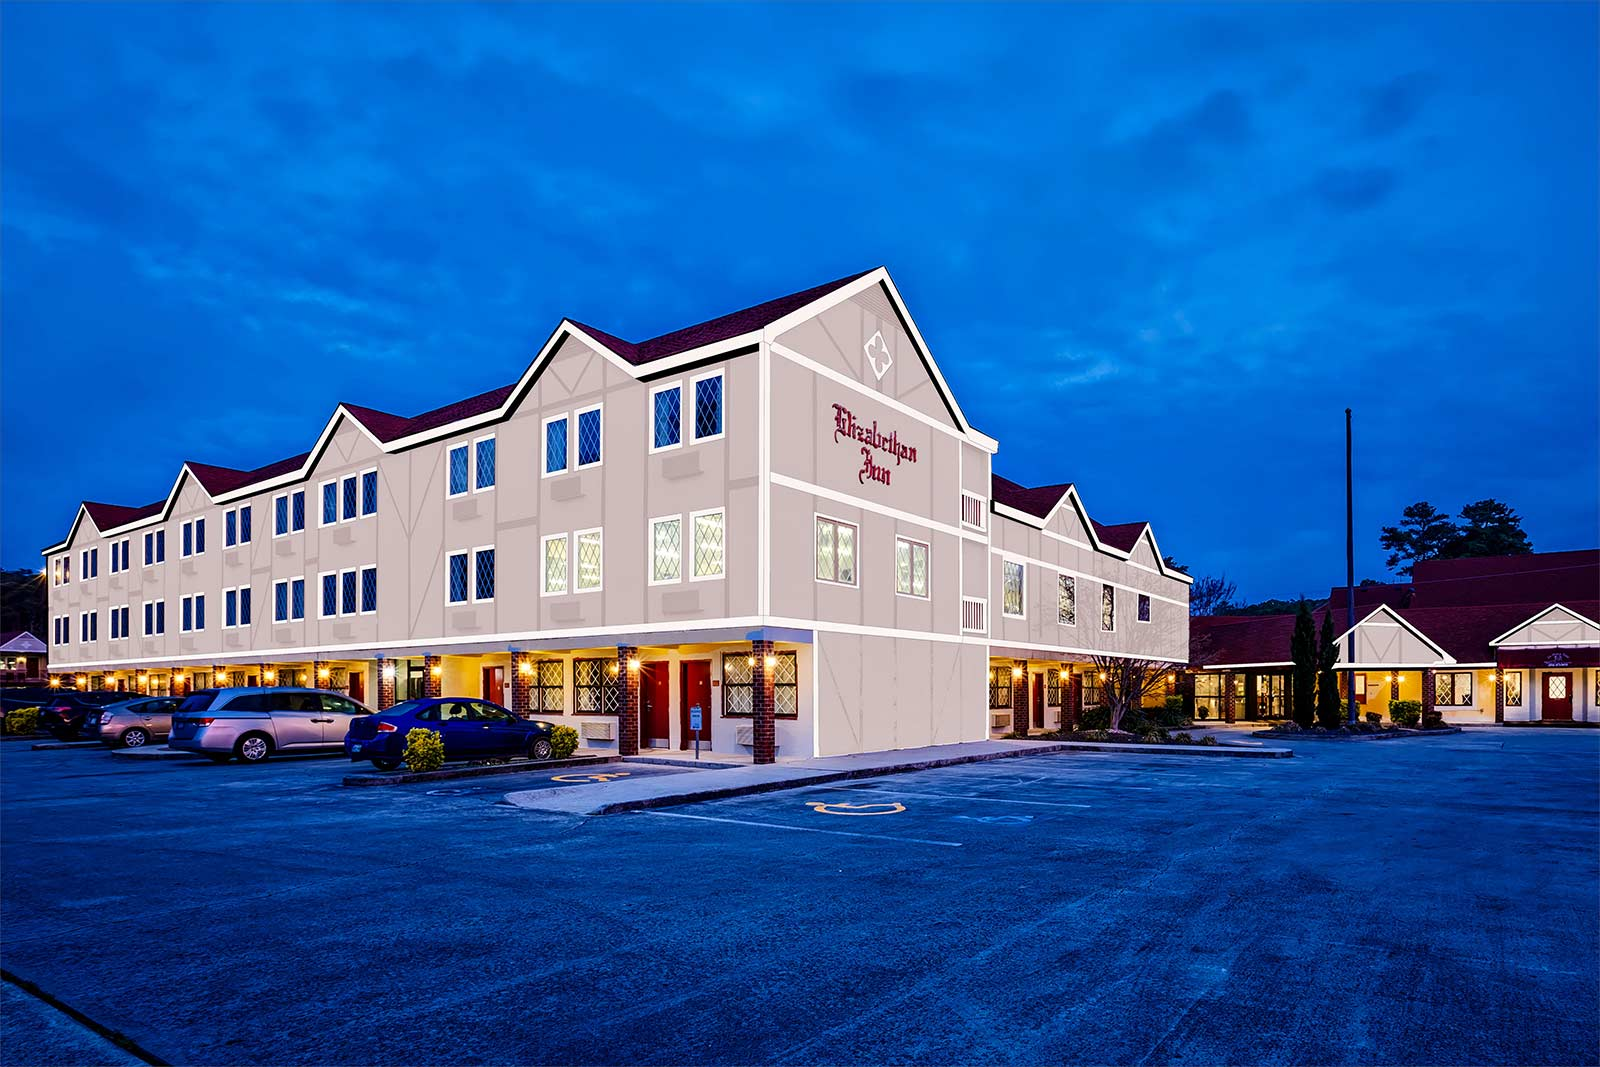 Outer Banks Hotels >> Best Hotels Near Obx Budget Holiday Hotel Manteo Nc Outer Banks